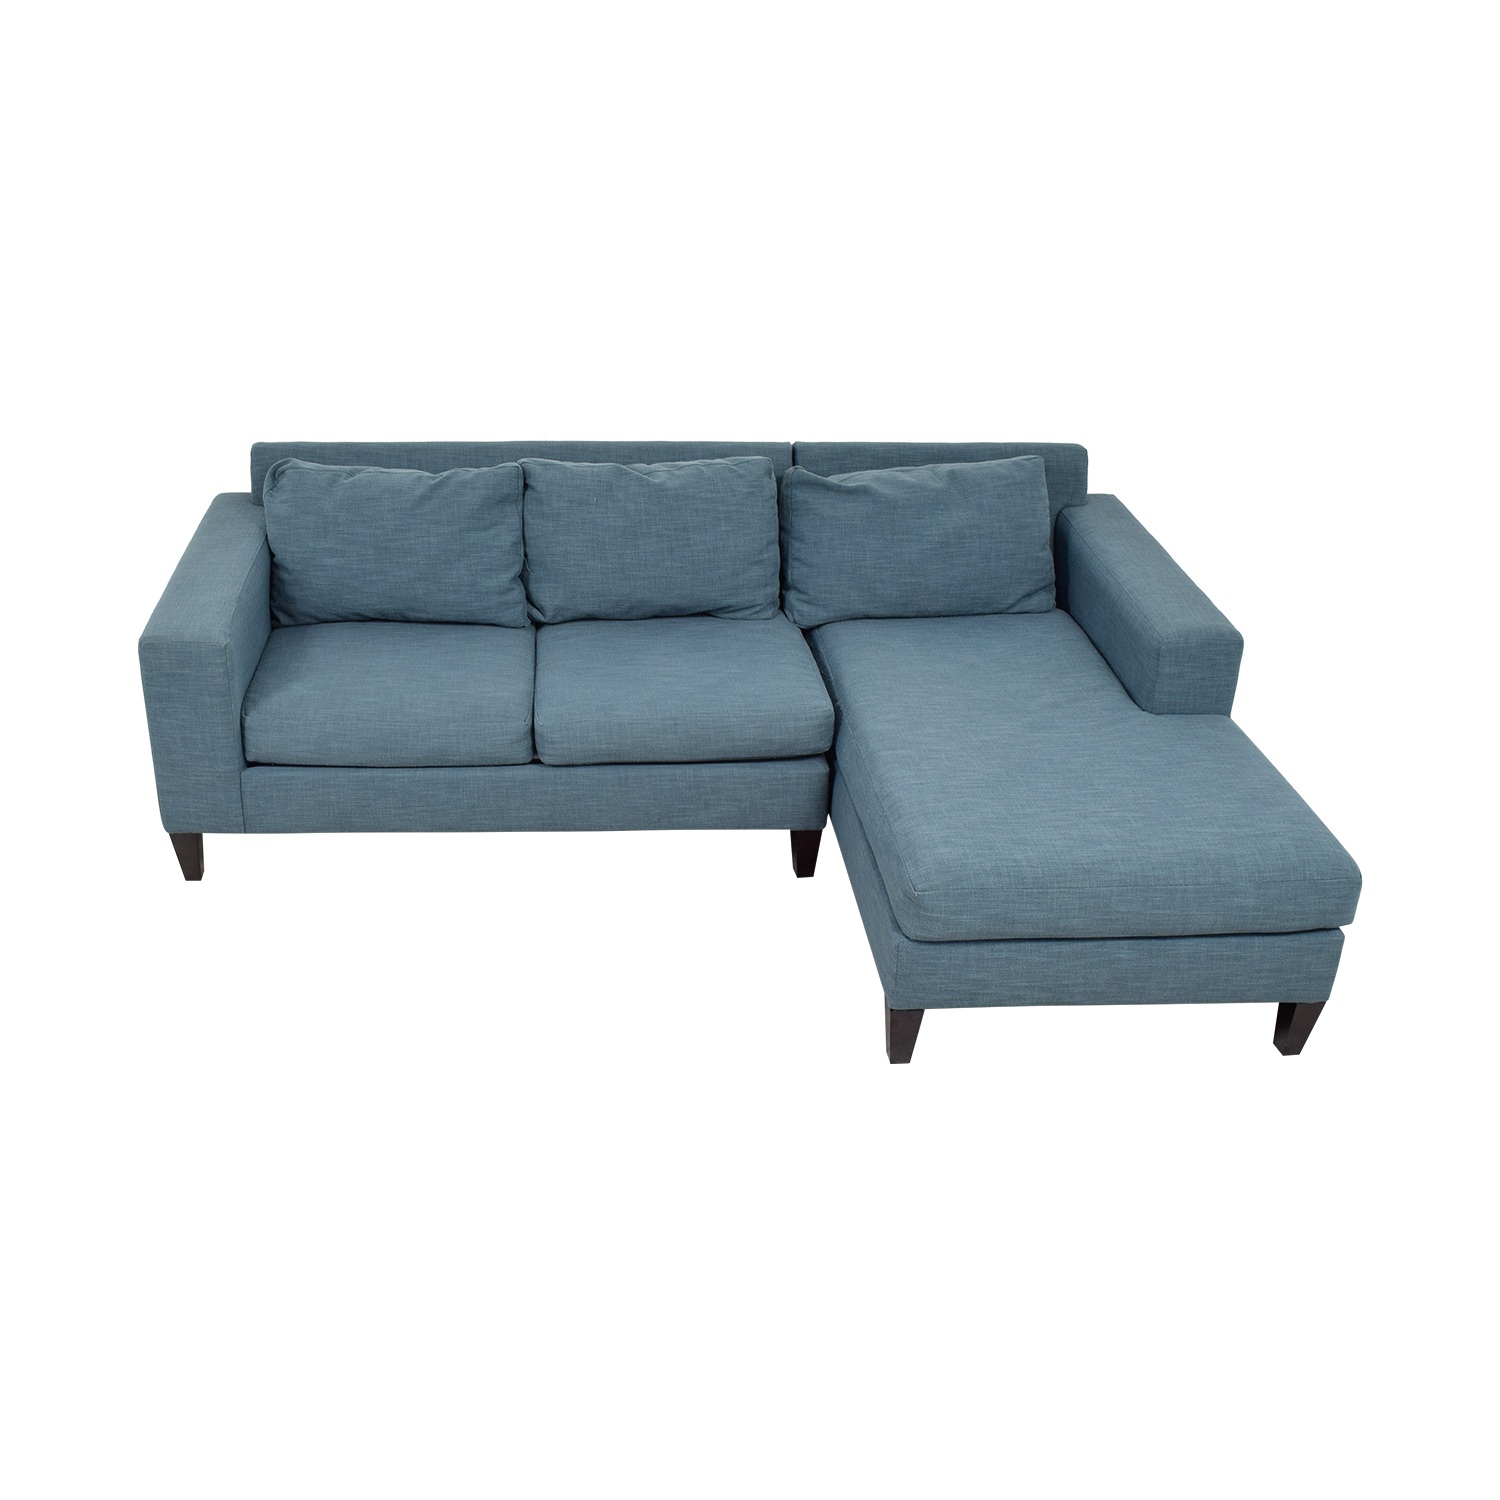 West Elm West Elm York Blue Chaise Sectional on sale